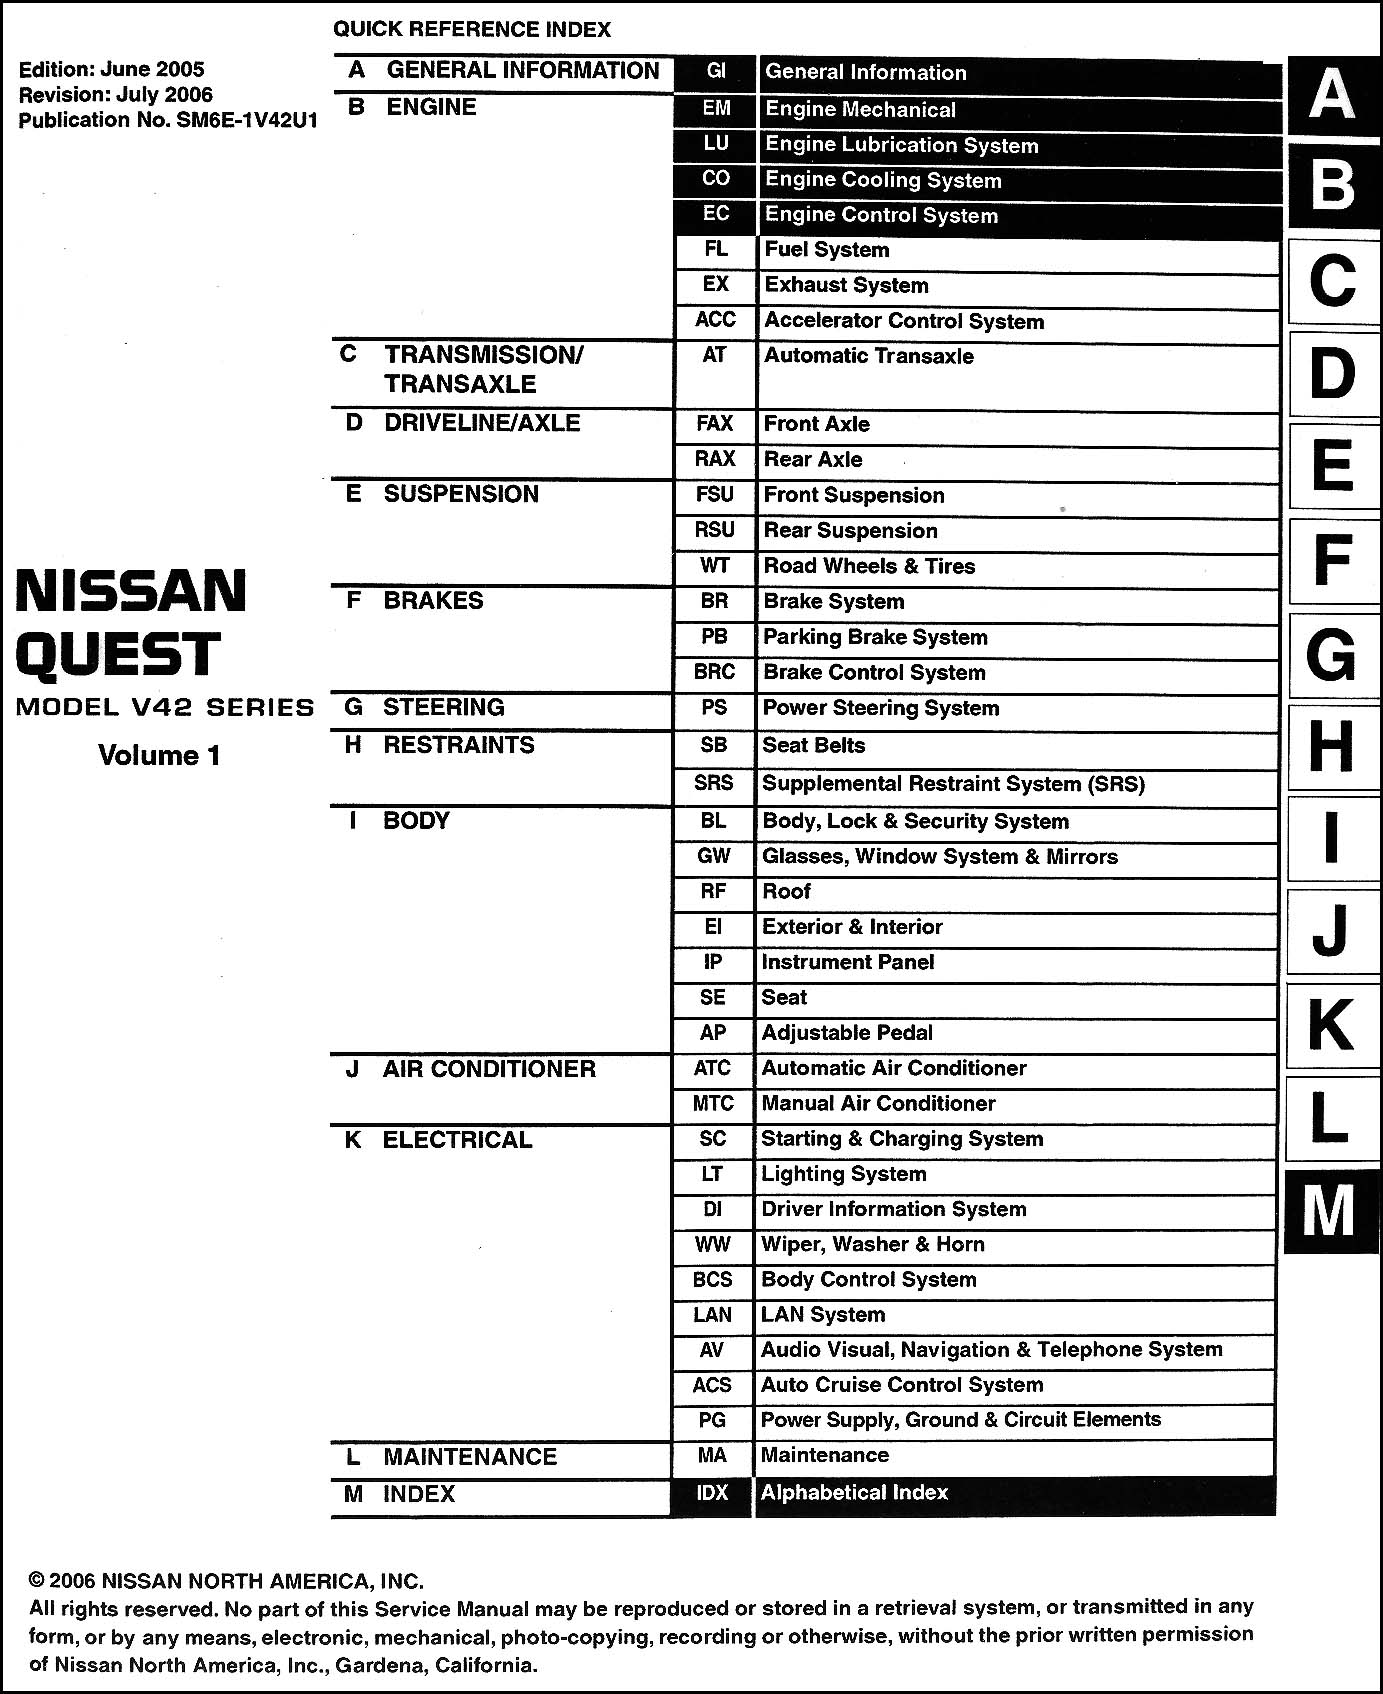 1993 Nissan Quest Fuse Box Diagram Wiring Diagrams Altima Service Manual Nx 2008 2002